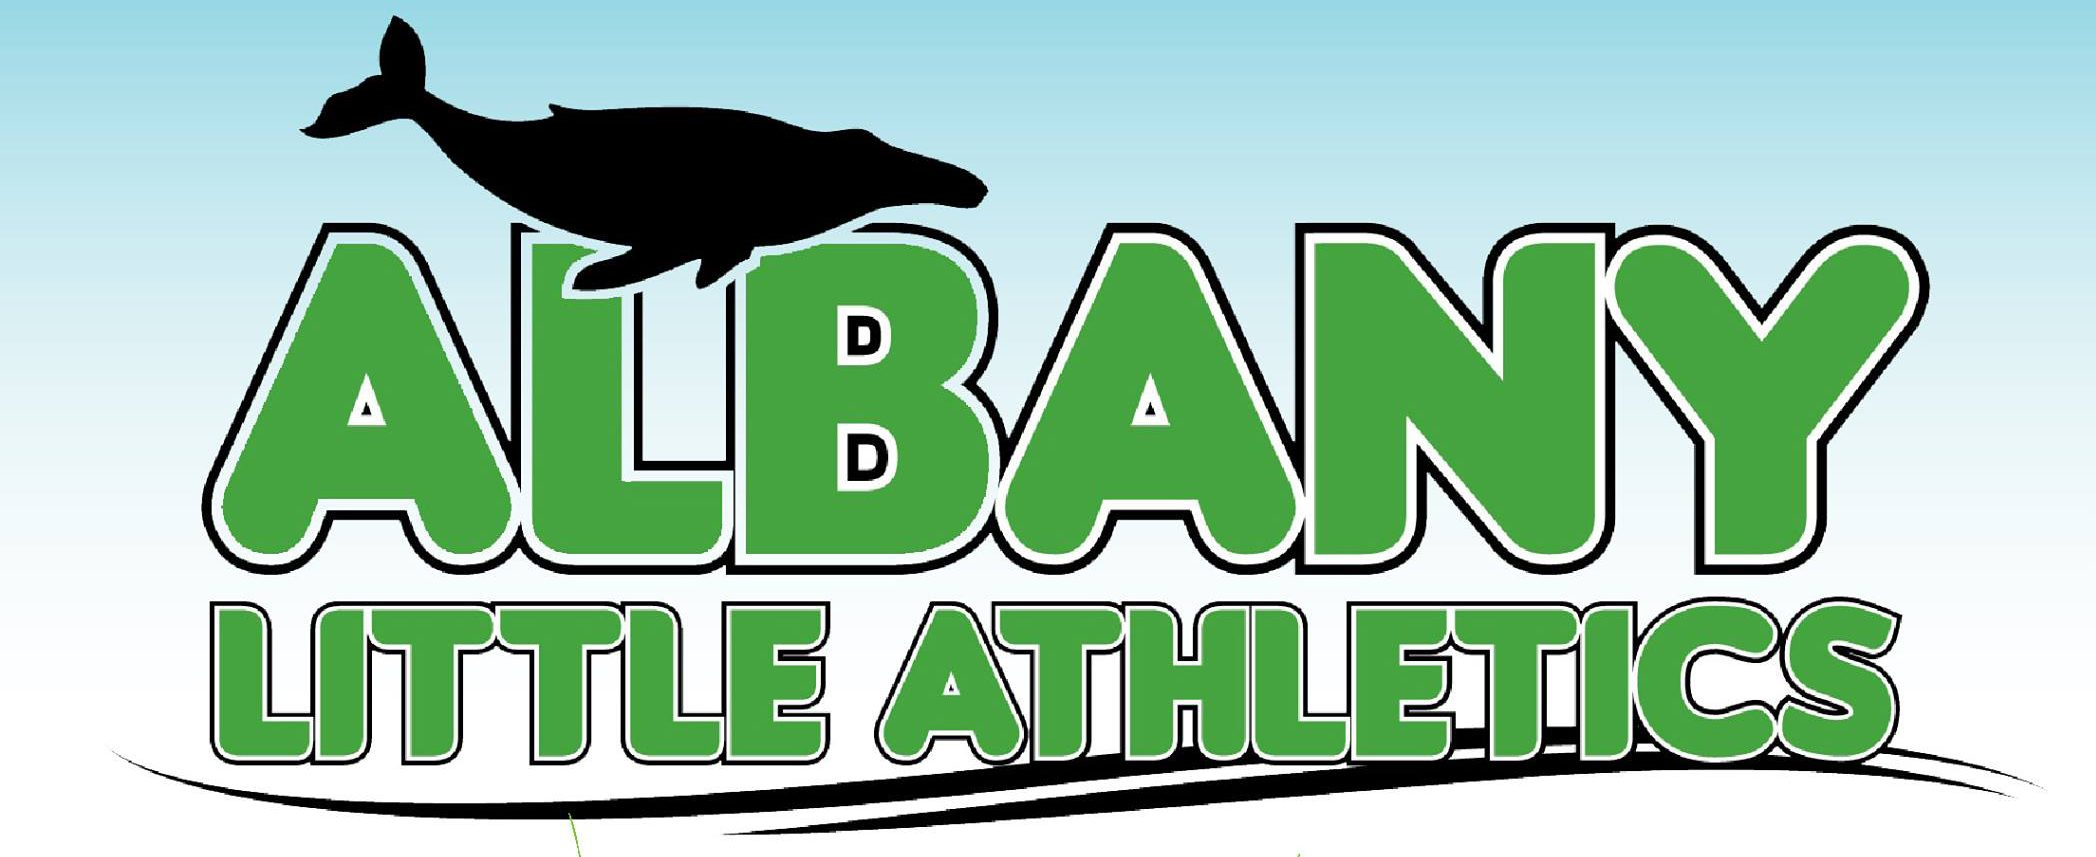 Albany Little Athletics Club